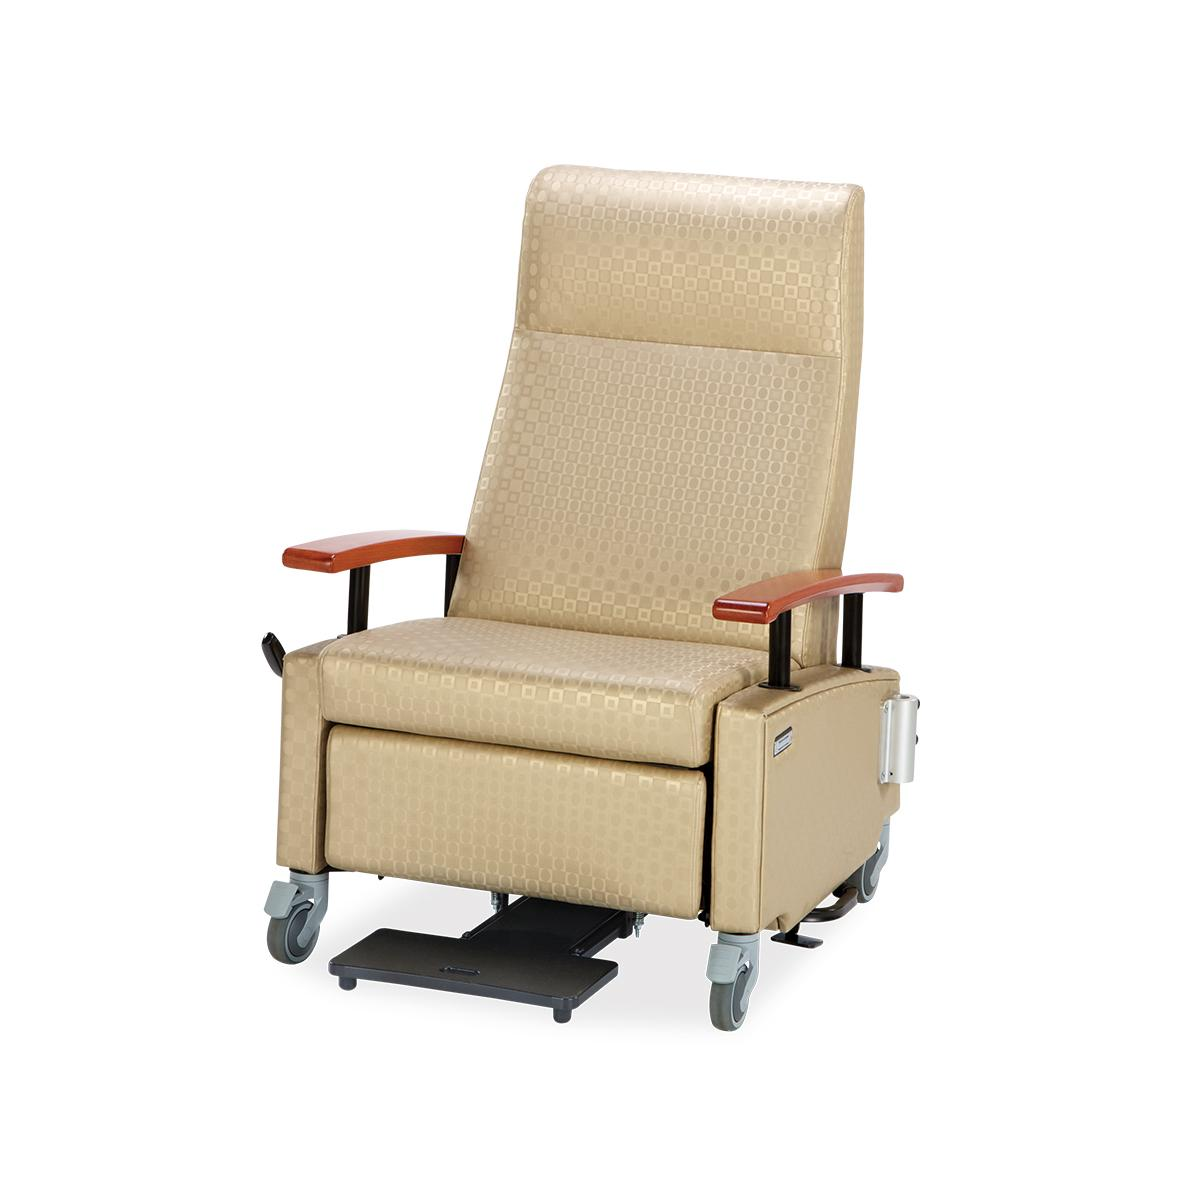 Art of Care Treatment Recliner, beige pattern, 3/4 view